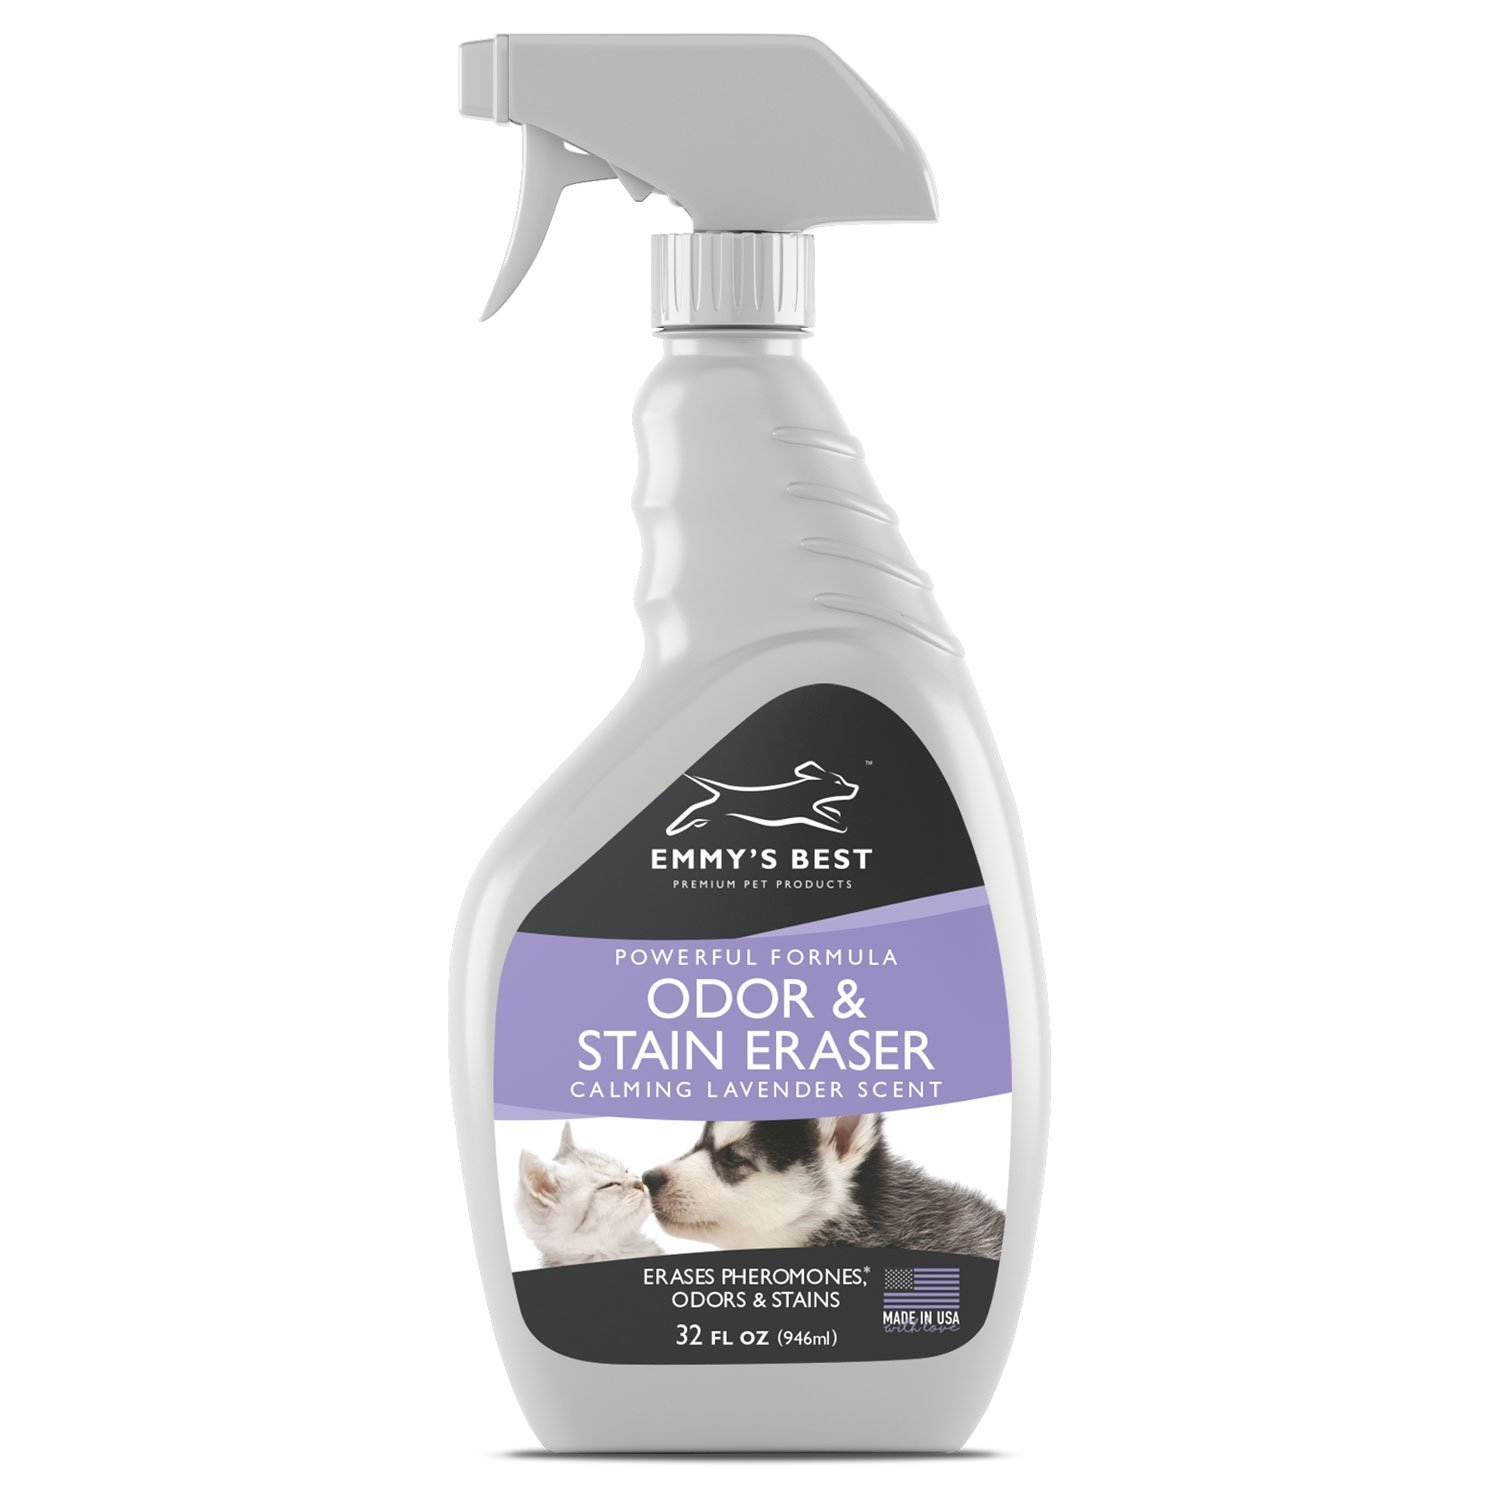 32 fl.oz BIG 32oz Premium Pet Odor Eliminator & Urine Remover Eliminates Tough Stains & Powerful Odors Using Exclusive Enzyme Formula Safe for Family, Home & Pets Works for Dogs, Cats, Bird Cages, Litter Boxes & More